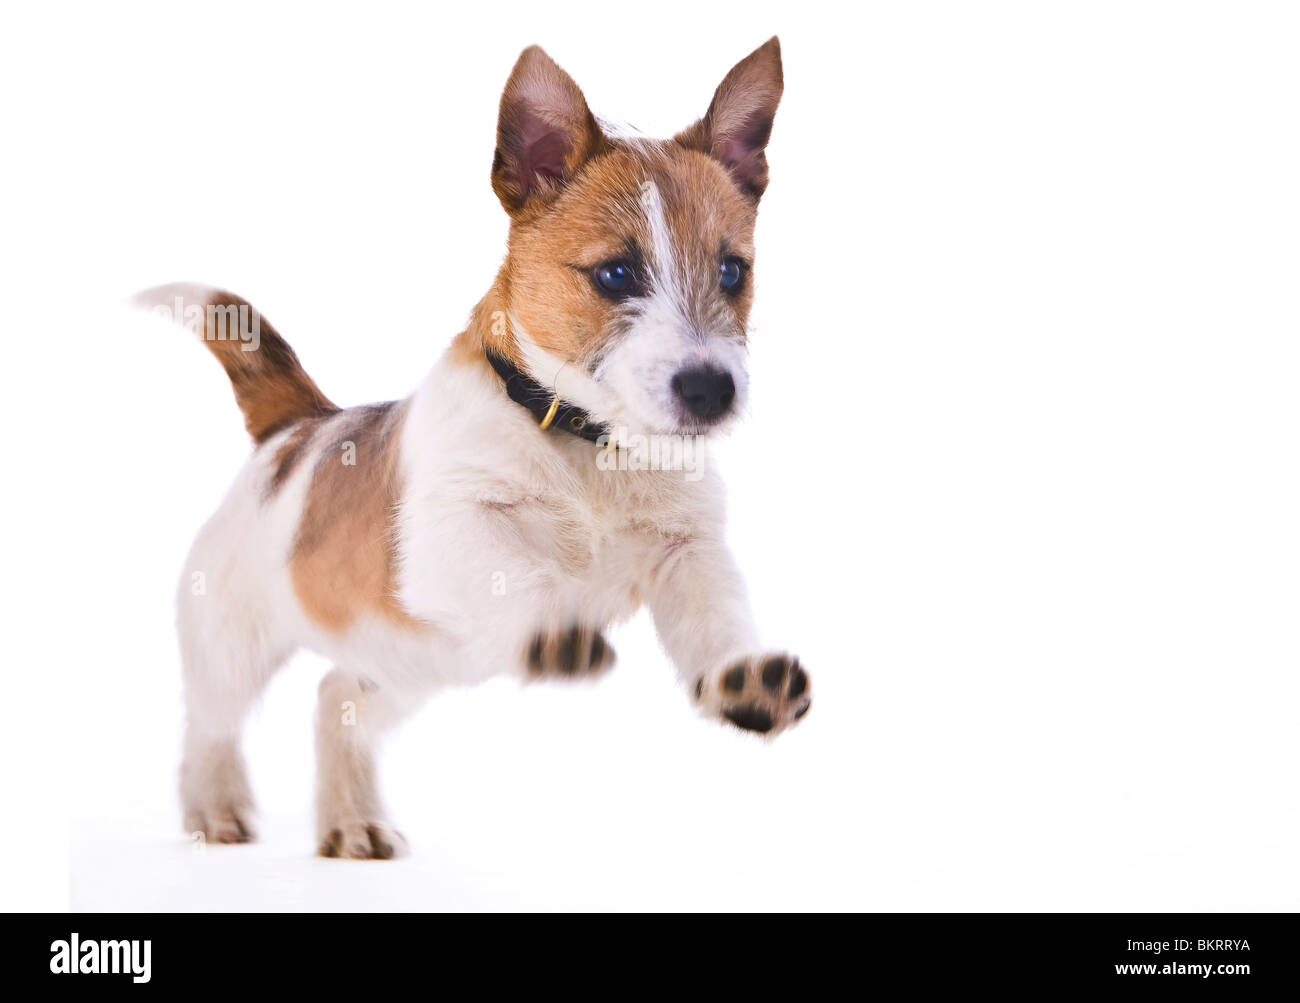 Jack Russell Puppy Brown and White in studio Stock Photo ...